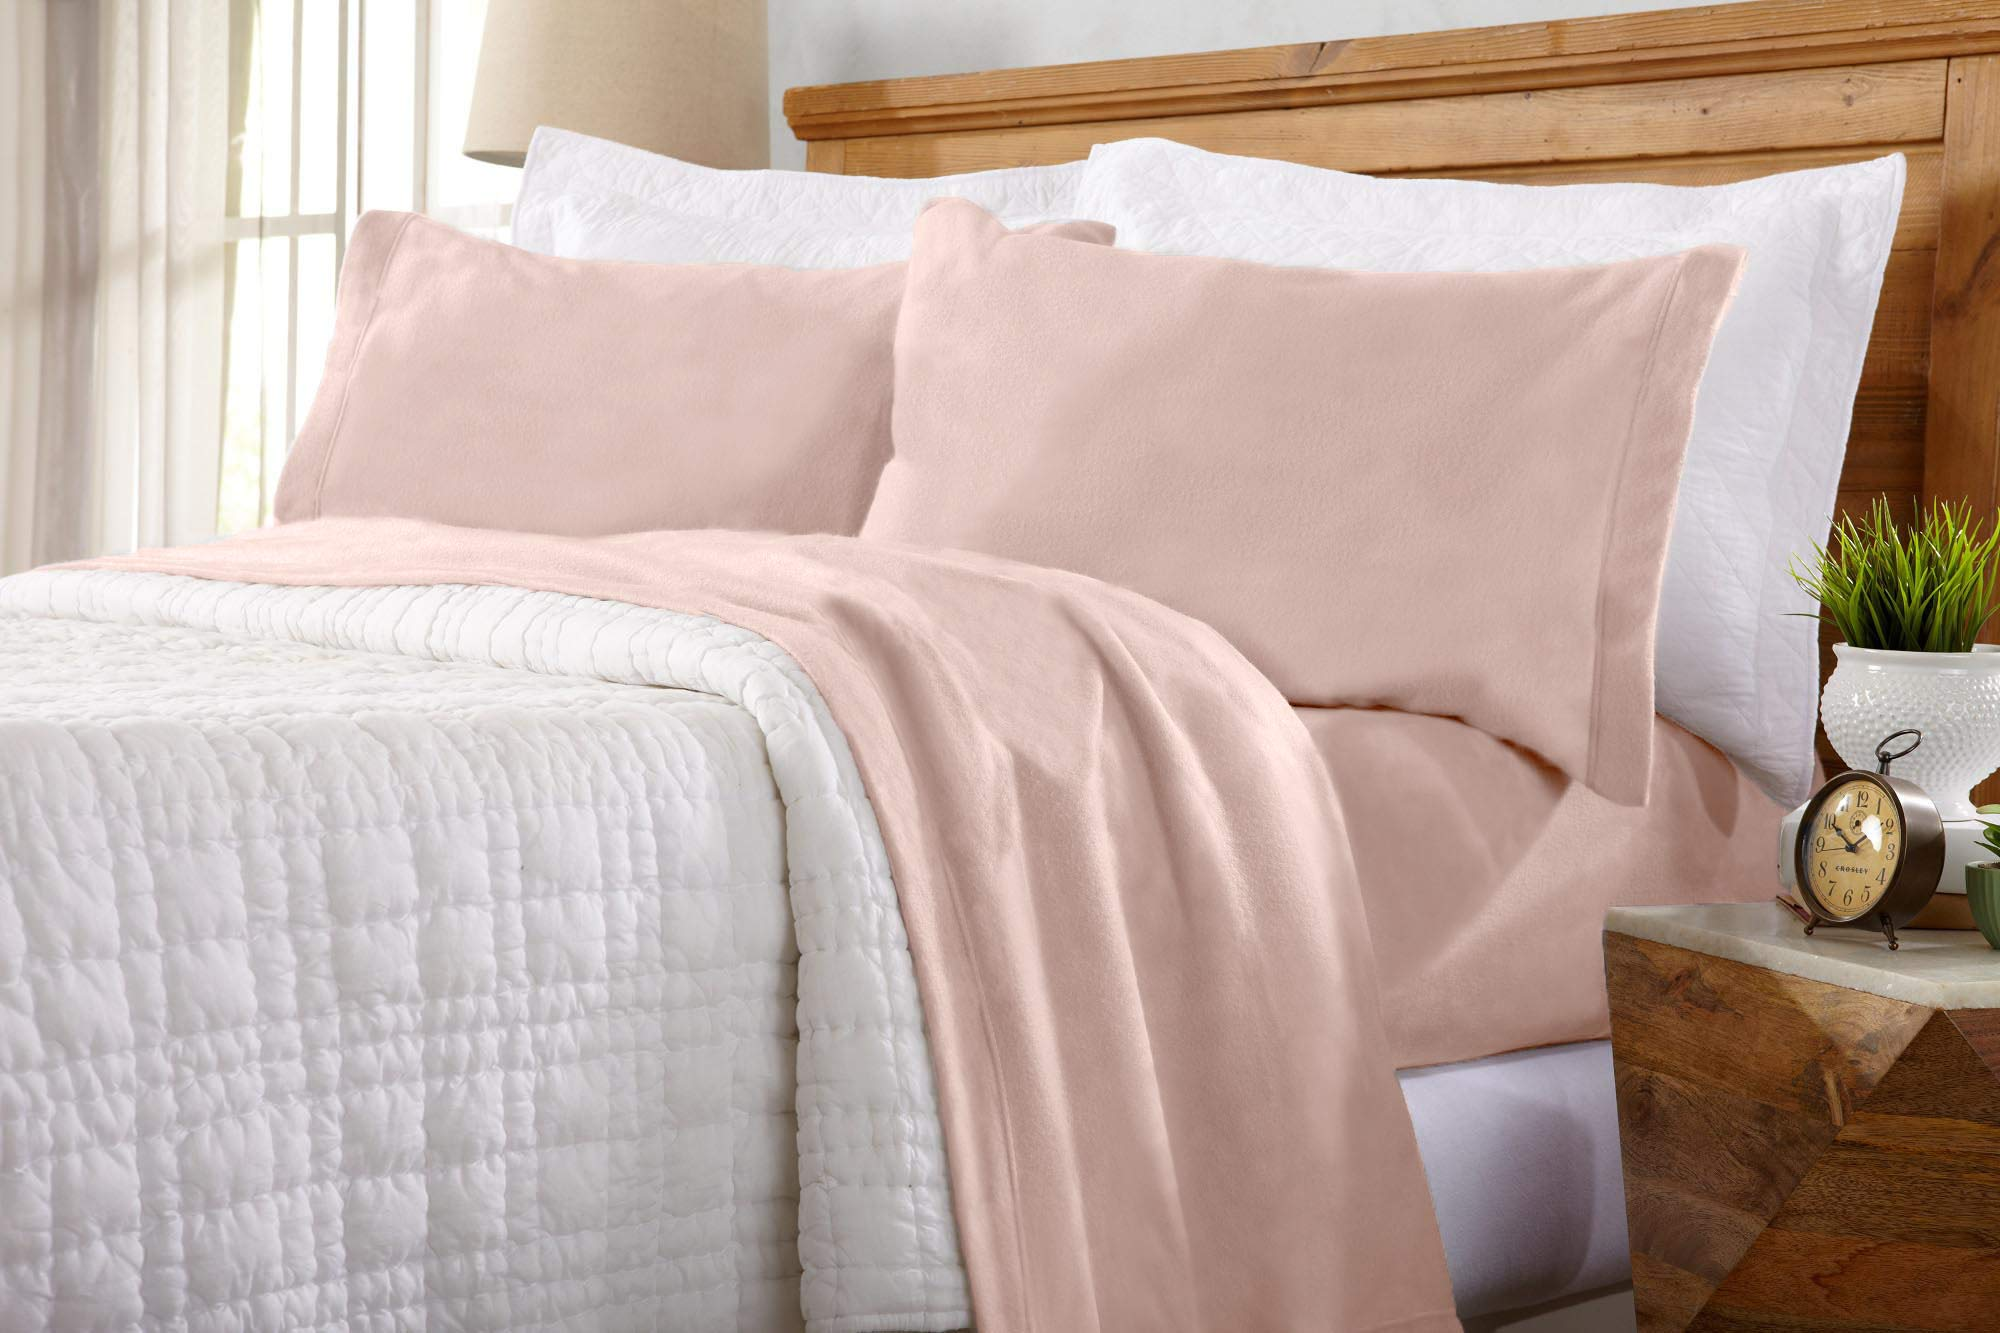 Home Fashion Designs Maya Collection Super Soft Extra Plush Fleece Sheet Set. Cozy, Warm, Durable, Smooth, Breathable Winter Sheets in Solid Colors (Twin, Blush Pink)